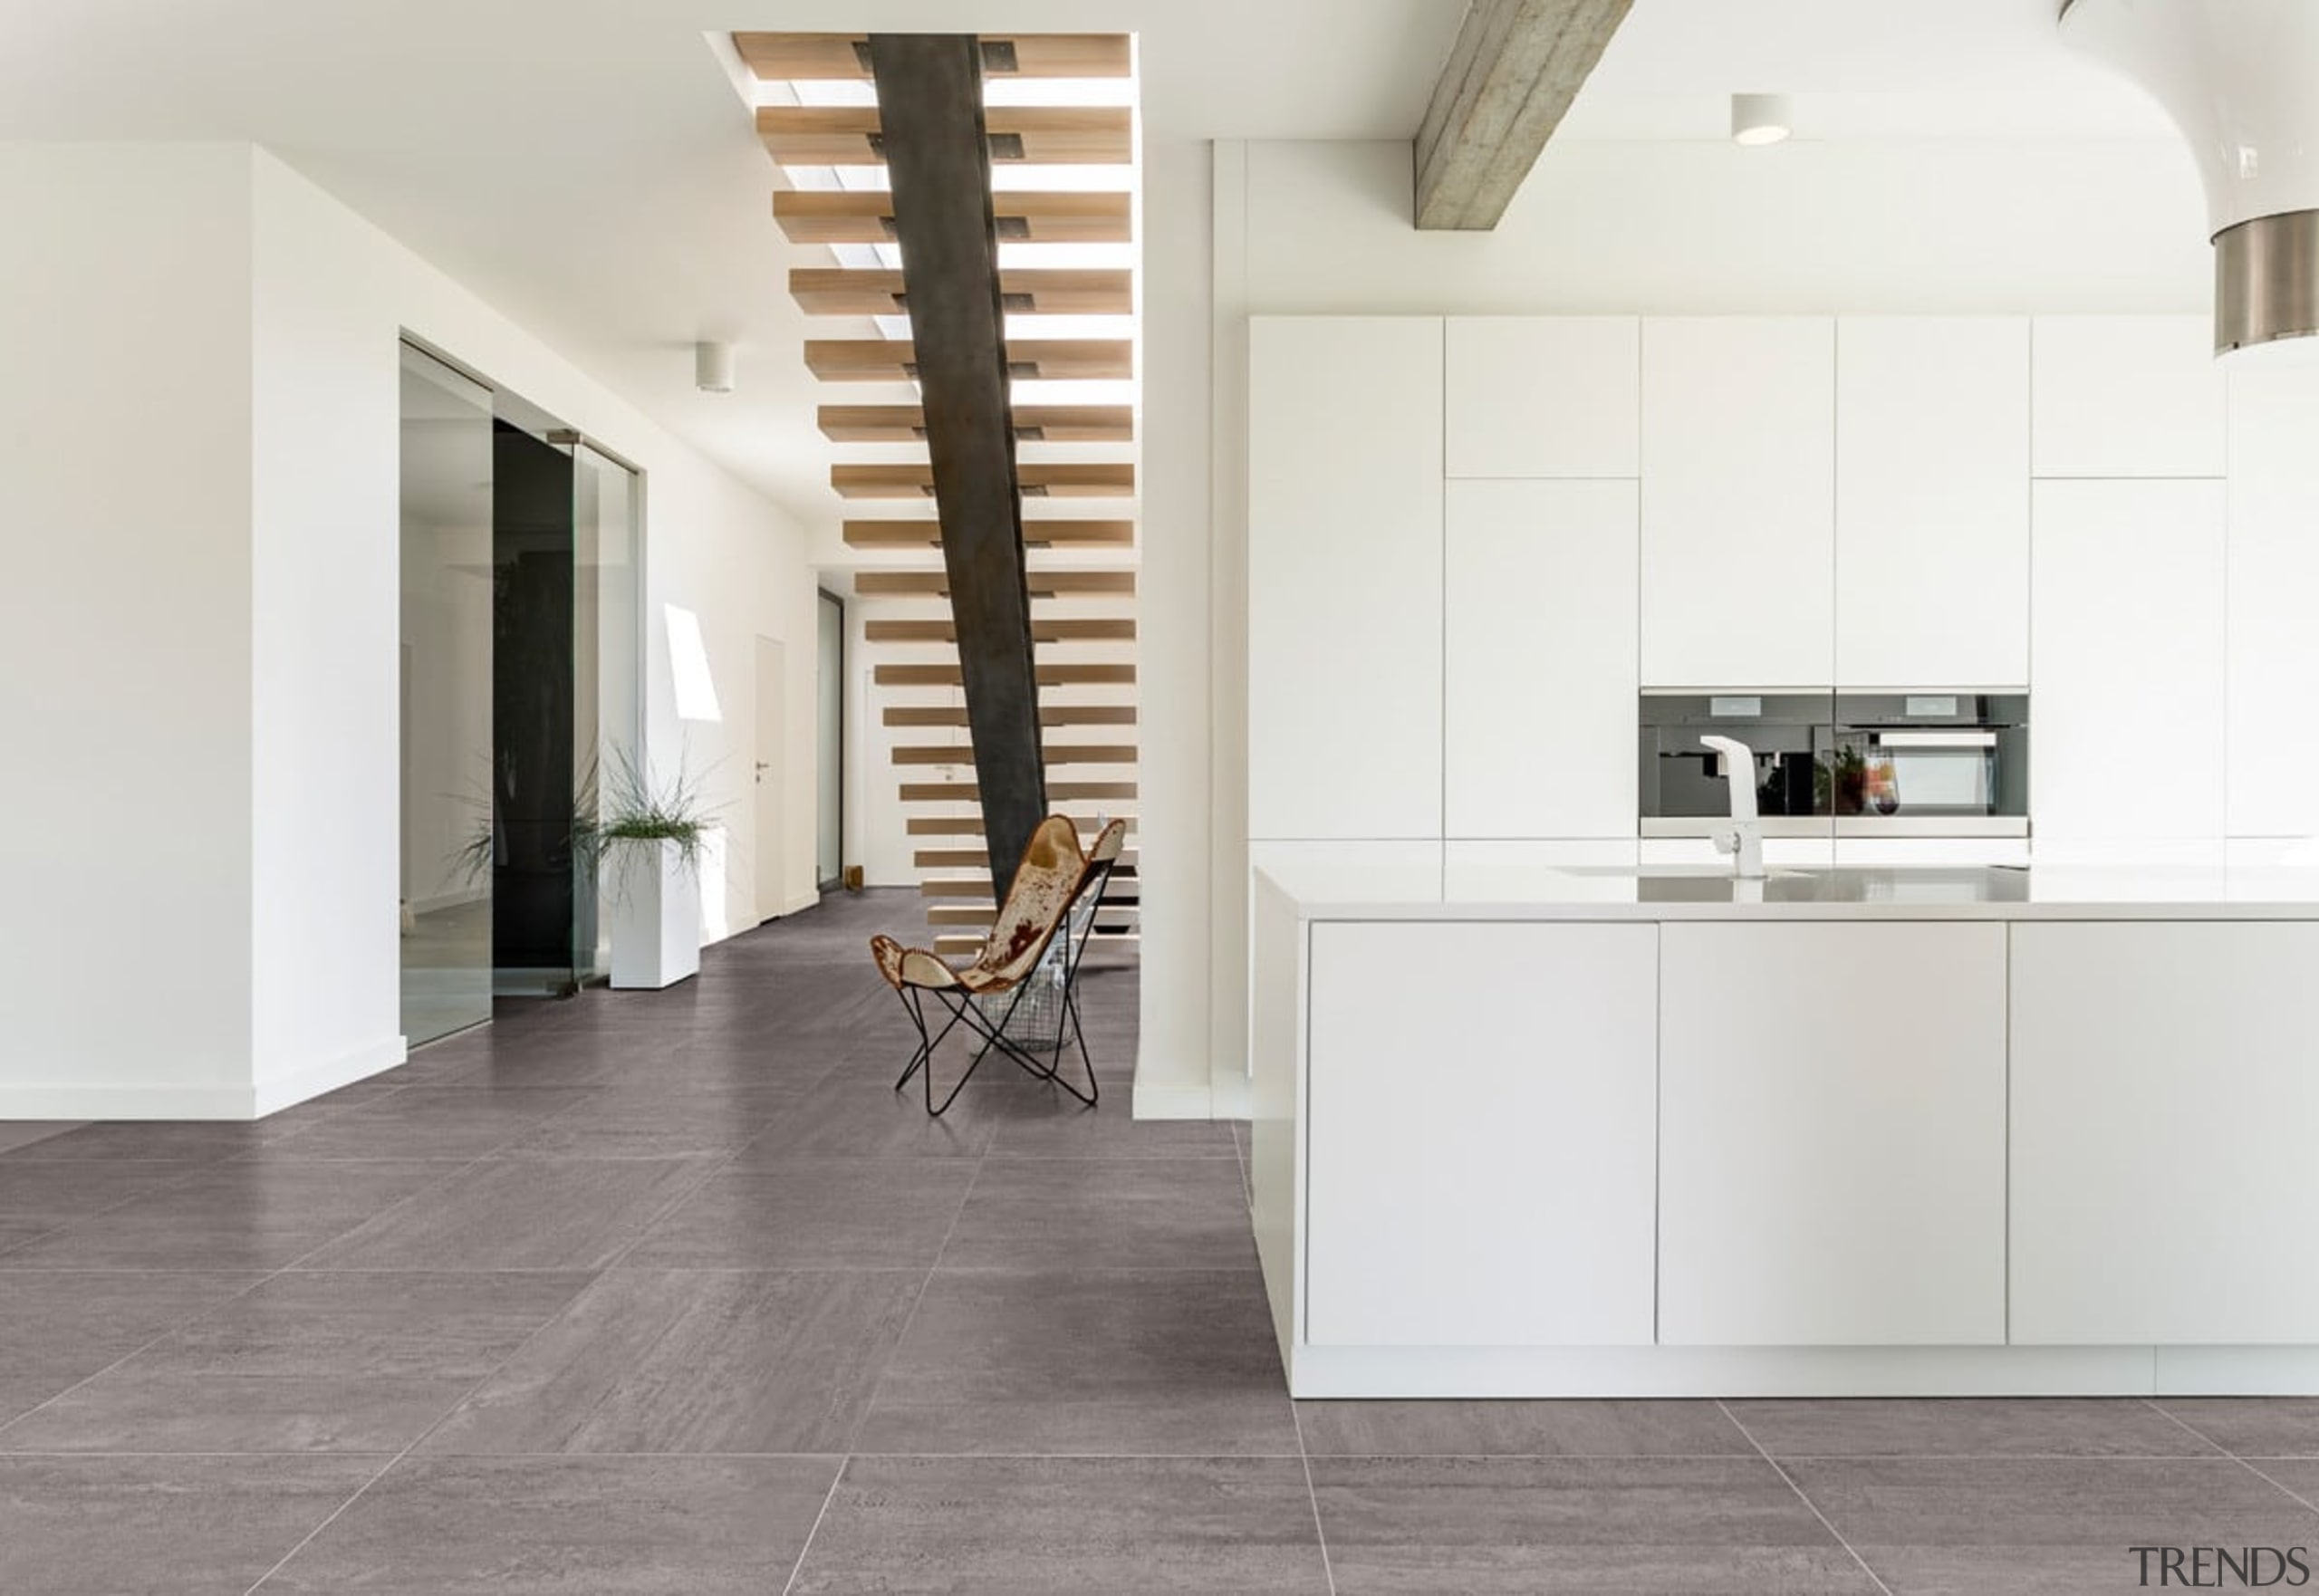 Beton Axis Grey Matt 600x600 - Beton Axis architecture, floor, flooring, hardwood, interior design, laminate flooring, tile, wood, wood flooring, white, gray